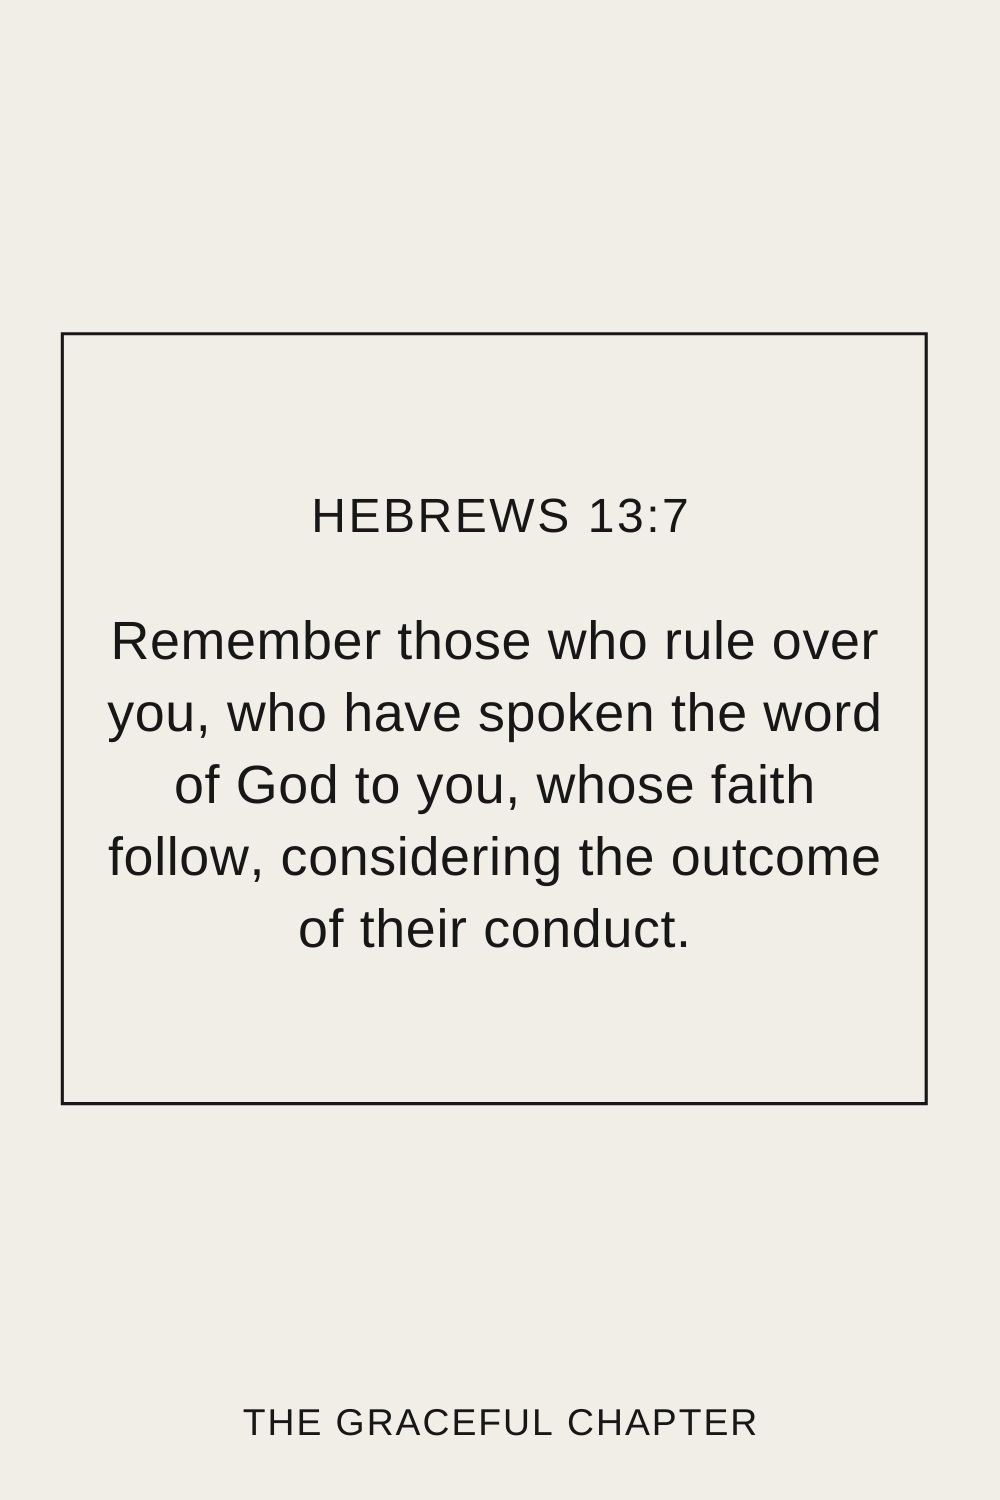 Remember those who rule over you, who have spoken the word of God to you, whose faith follow, considering the outcome of their conduct. Hebrews 13:7